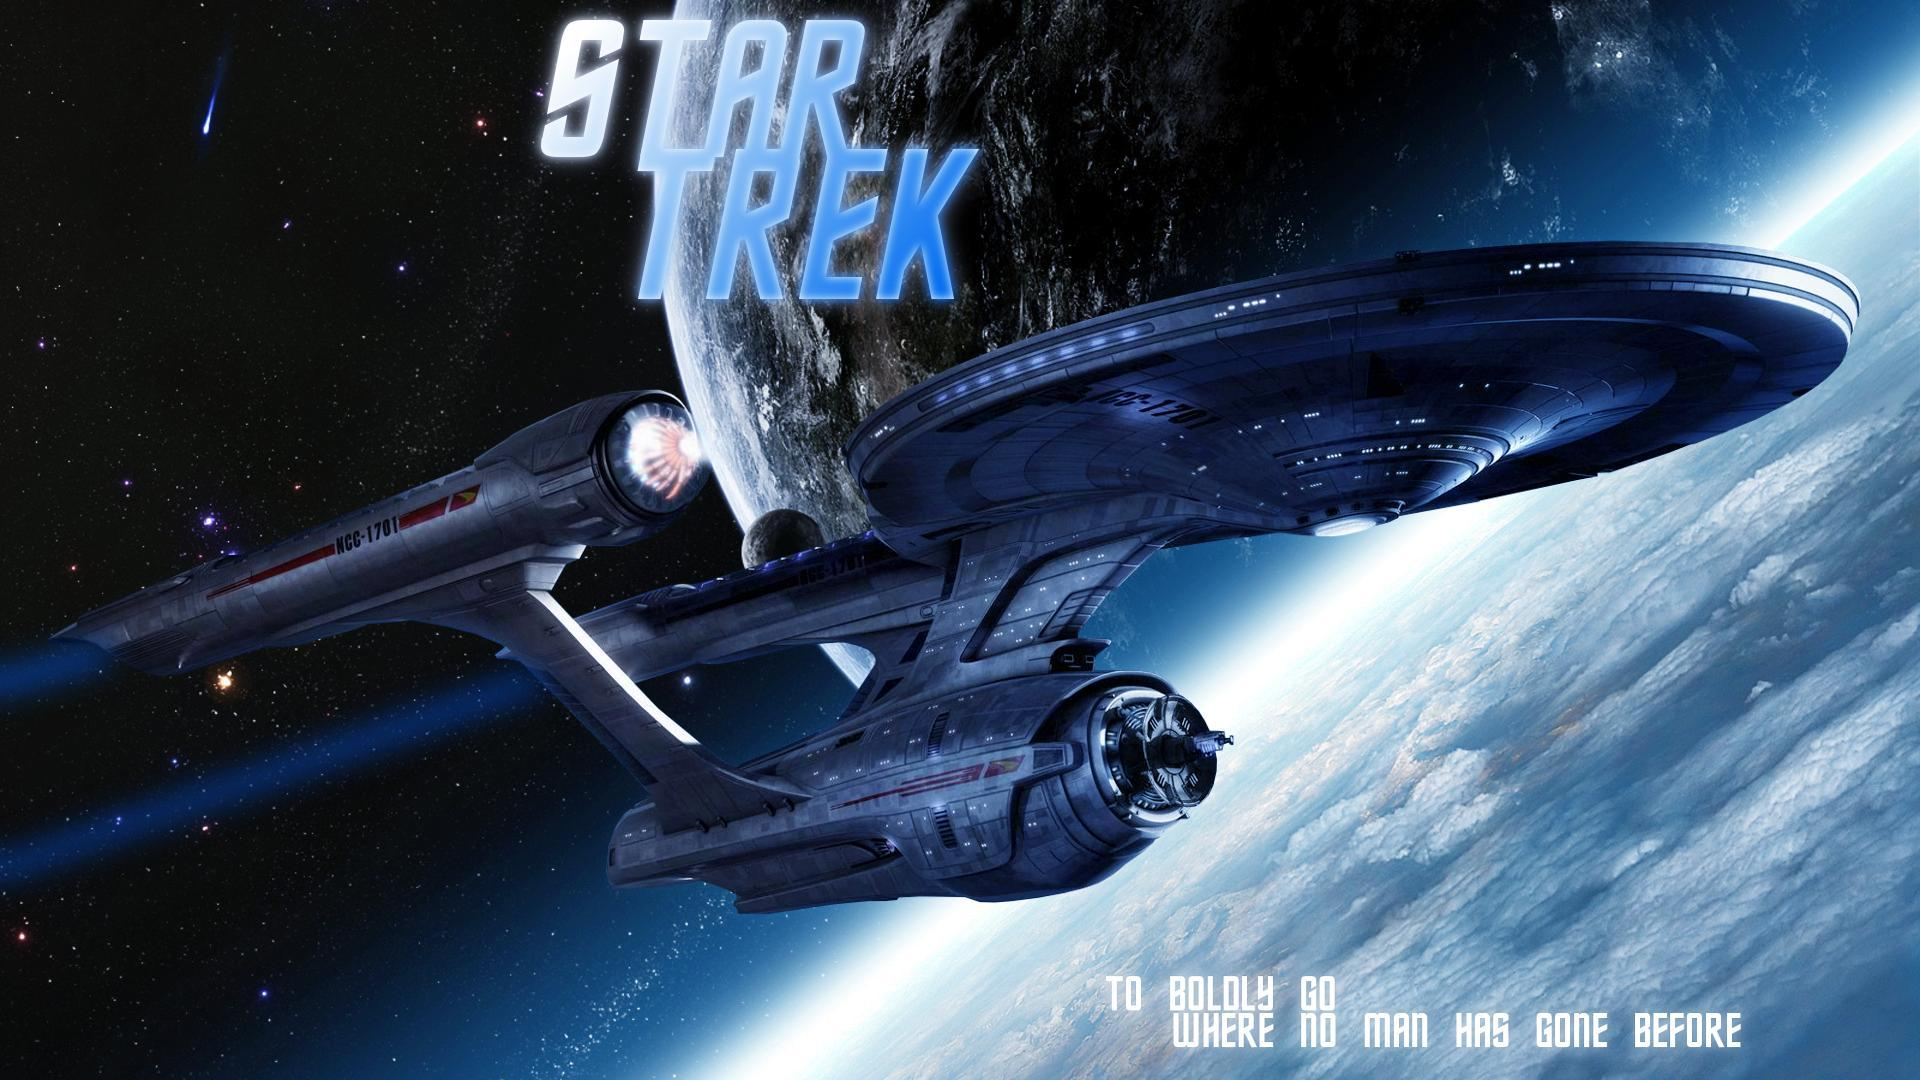 Star Trek Wallpapers 1920x1080